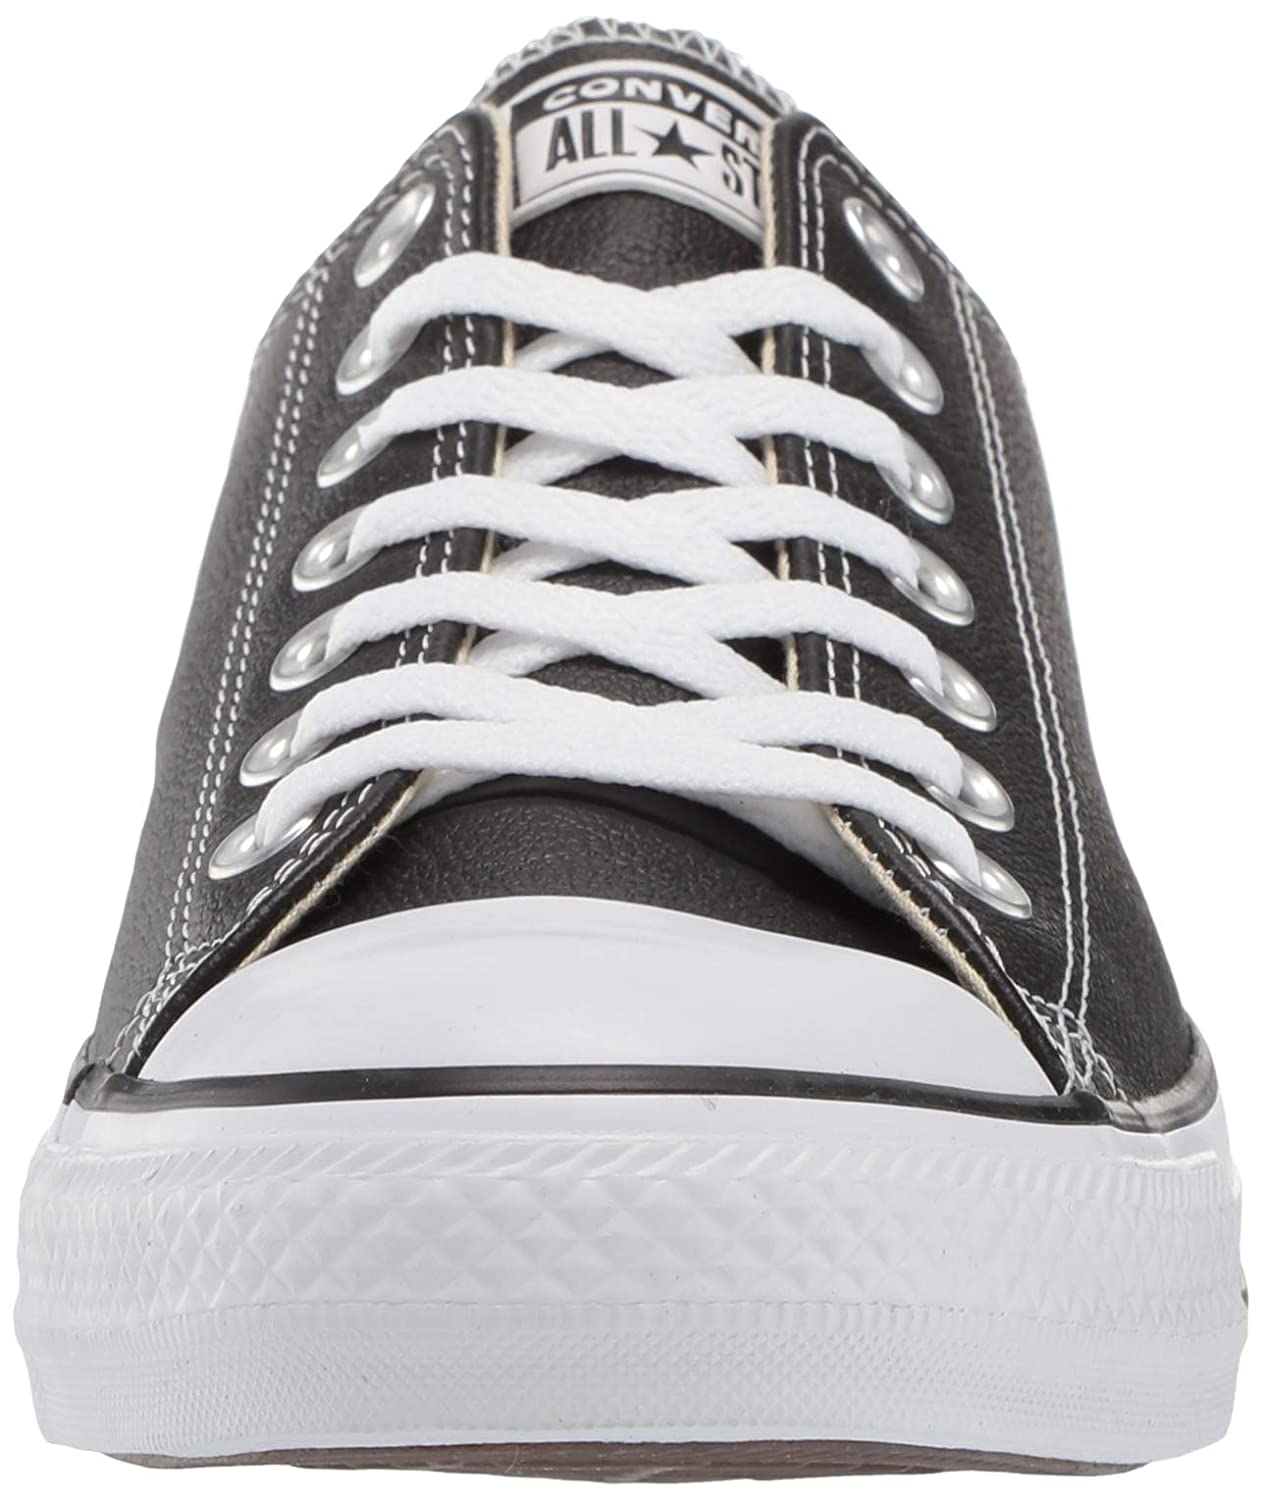 d65261324c Converse Chuck Taylor All Star, Unisex-Adult's